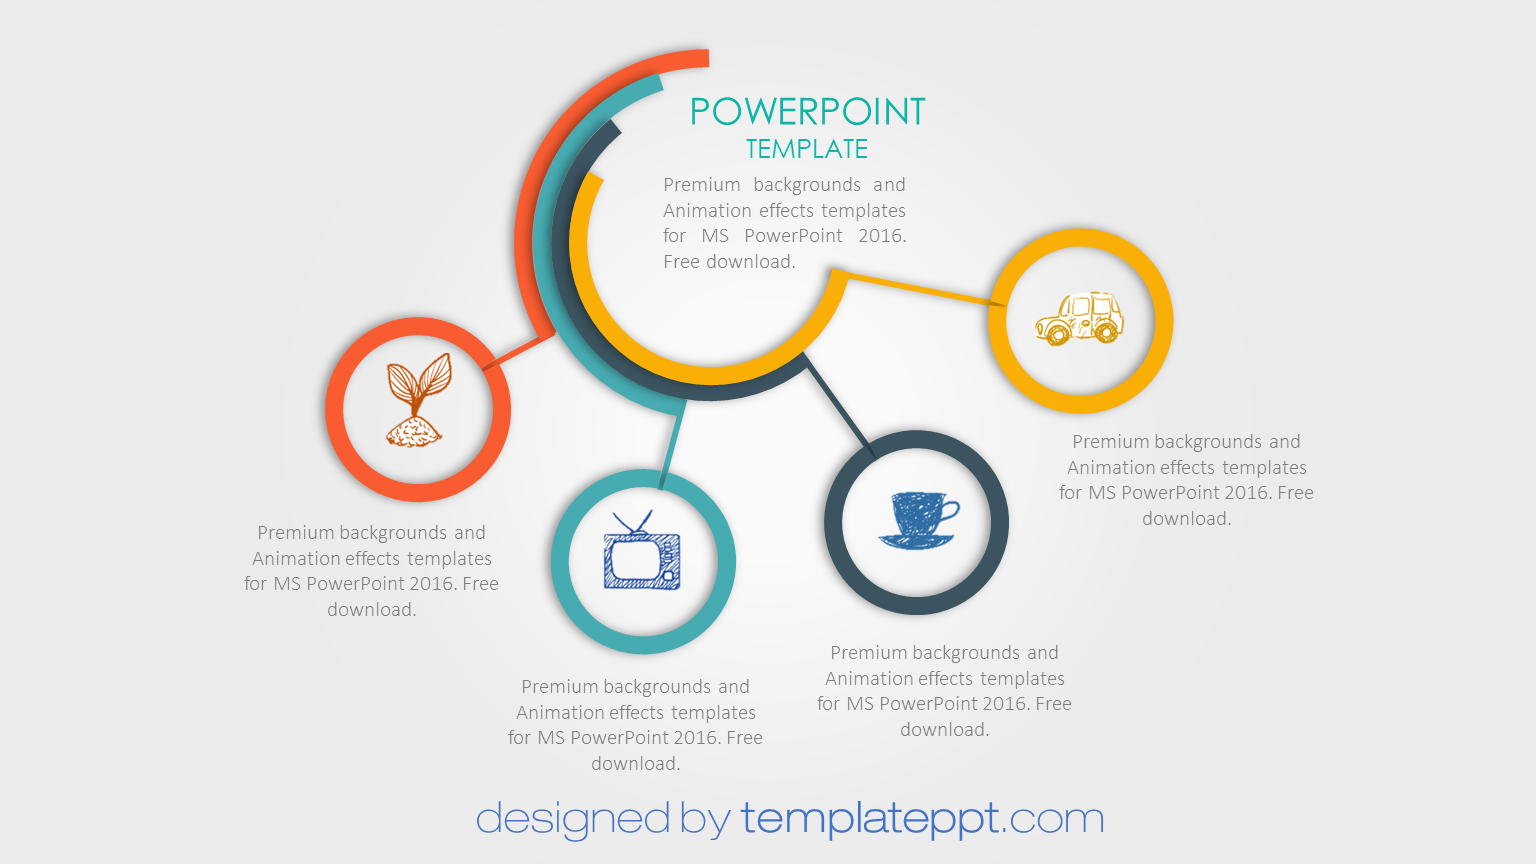 Professional powerpoint templates free download 2016 for What is a design template in powerpoint